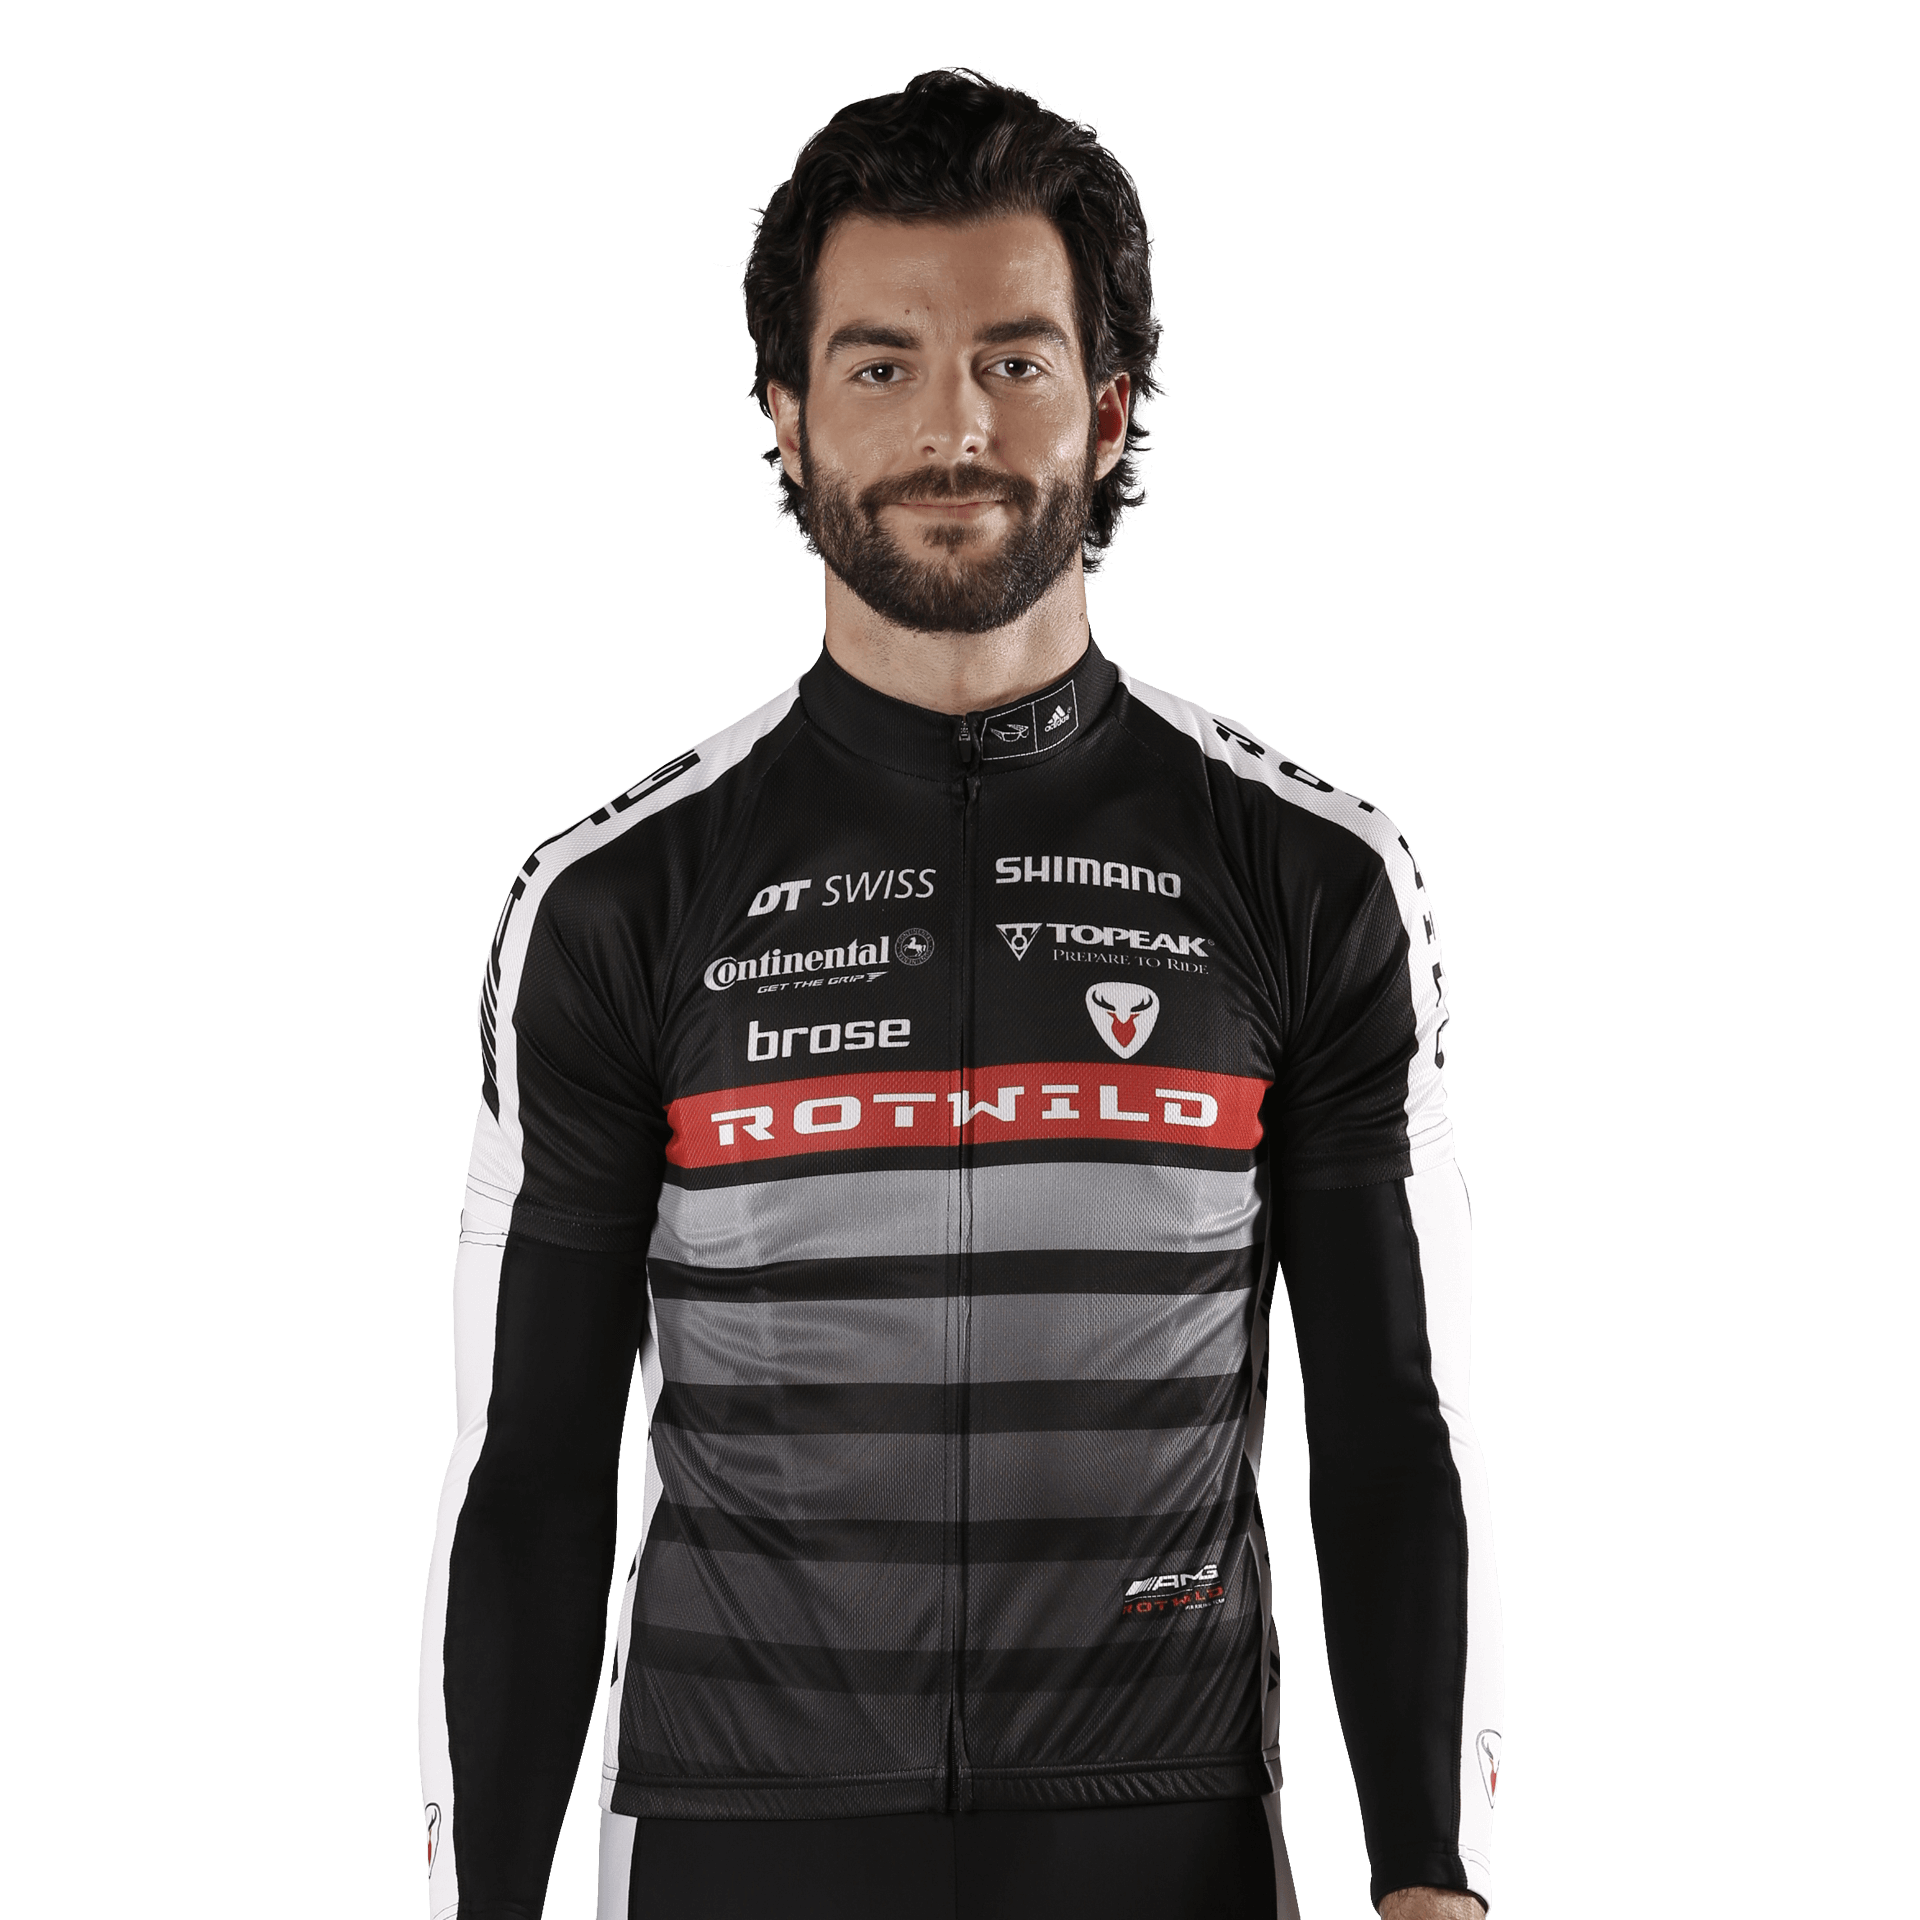 AMG ROTWILD TEAM JERSEY - XL - Radsport 360